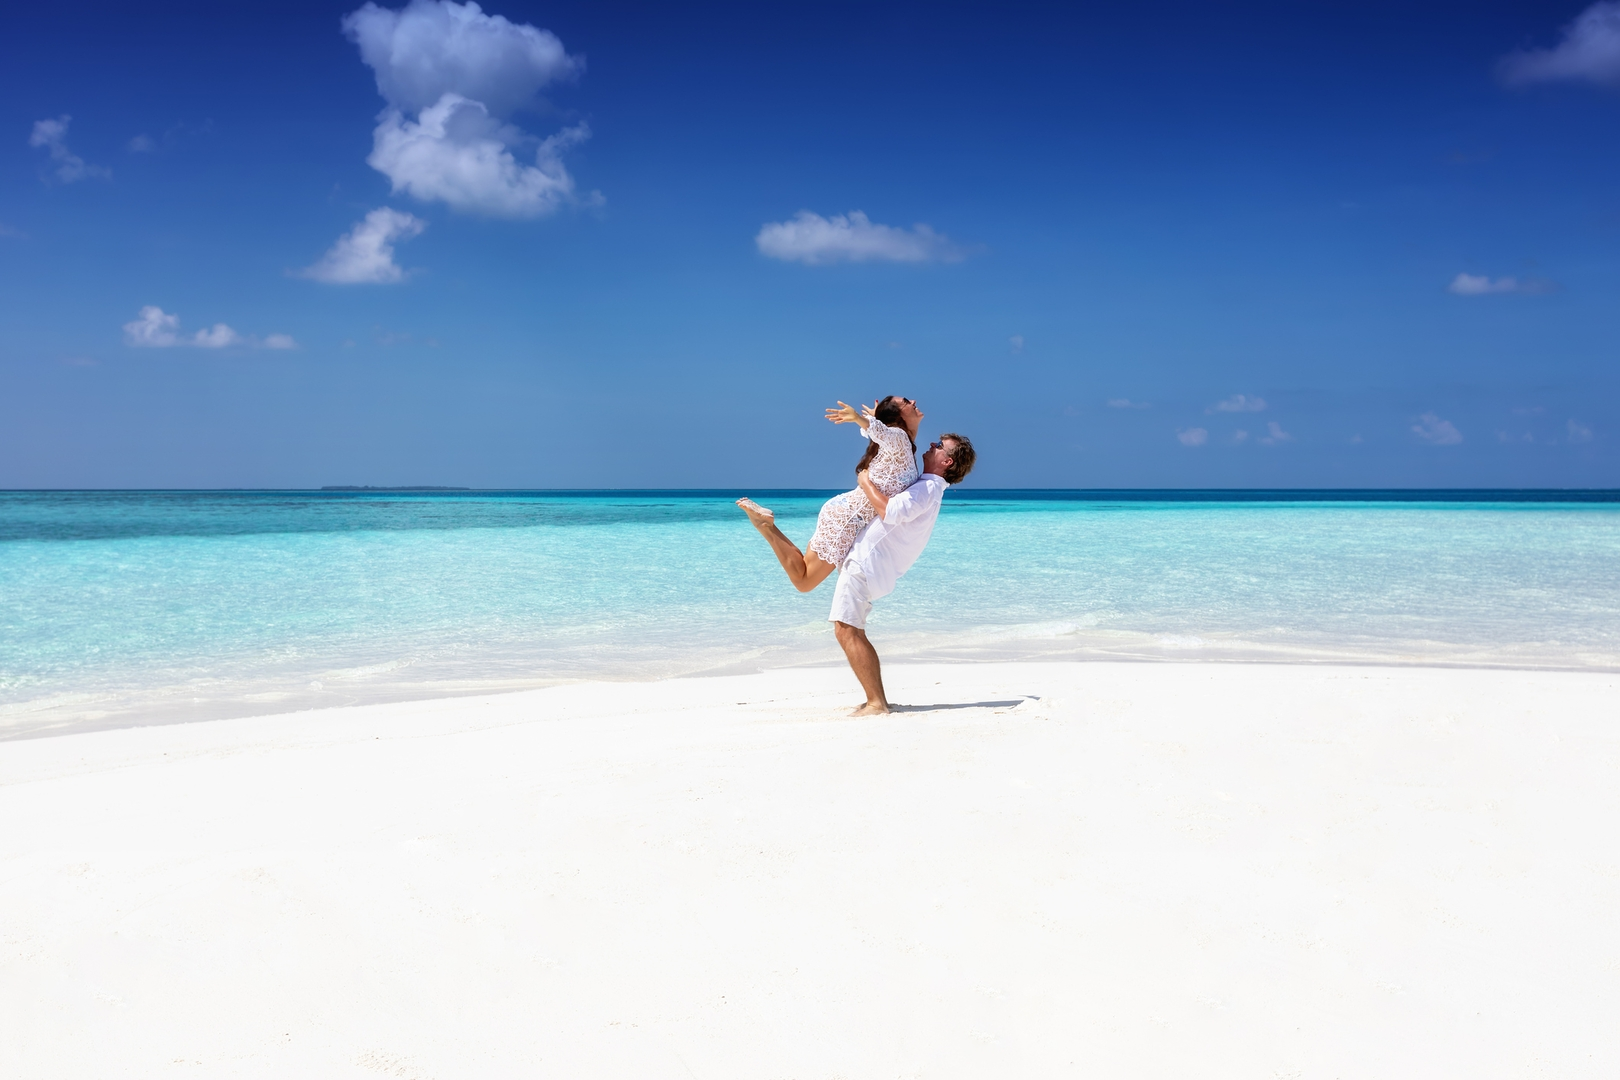 Happy, young couple in white summer clothes hugging on a tropical beach with turquoise sea